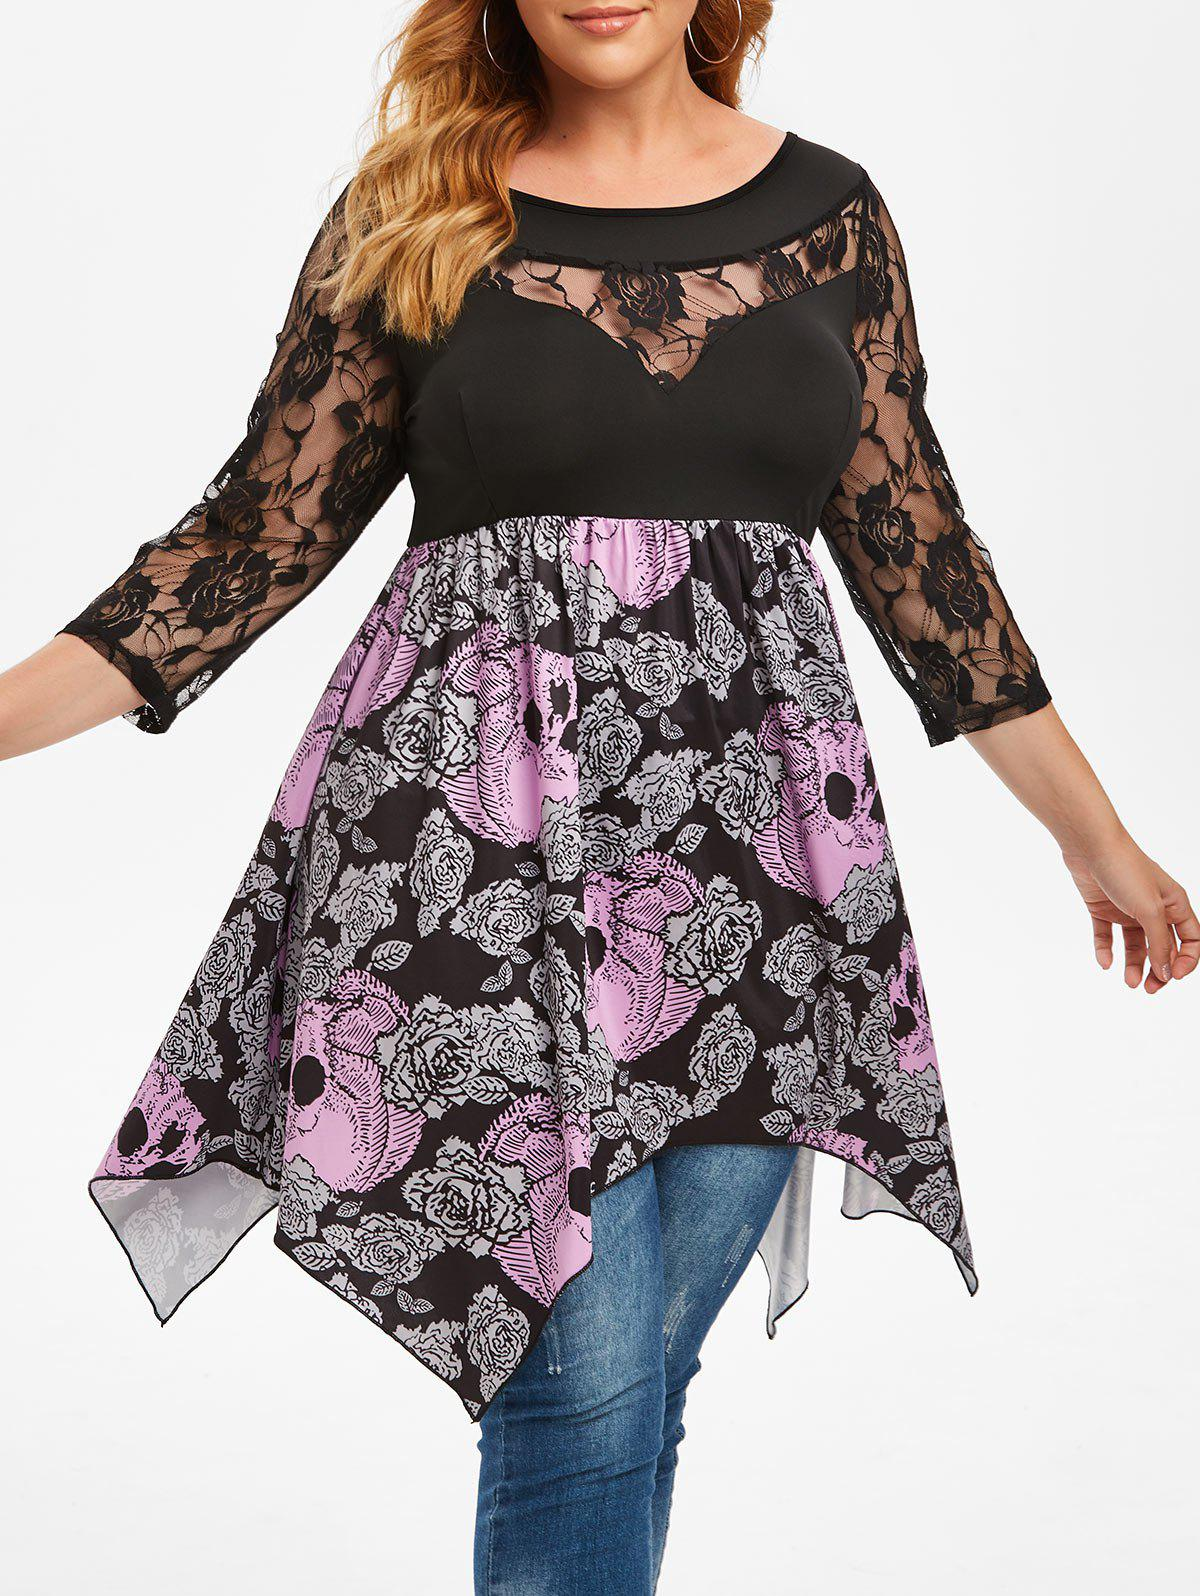 Plus Size Flower Skull Lace Insert Handkerchief Tee - BLACK 2X